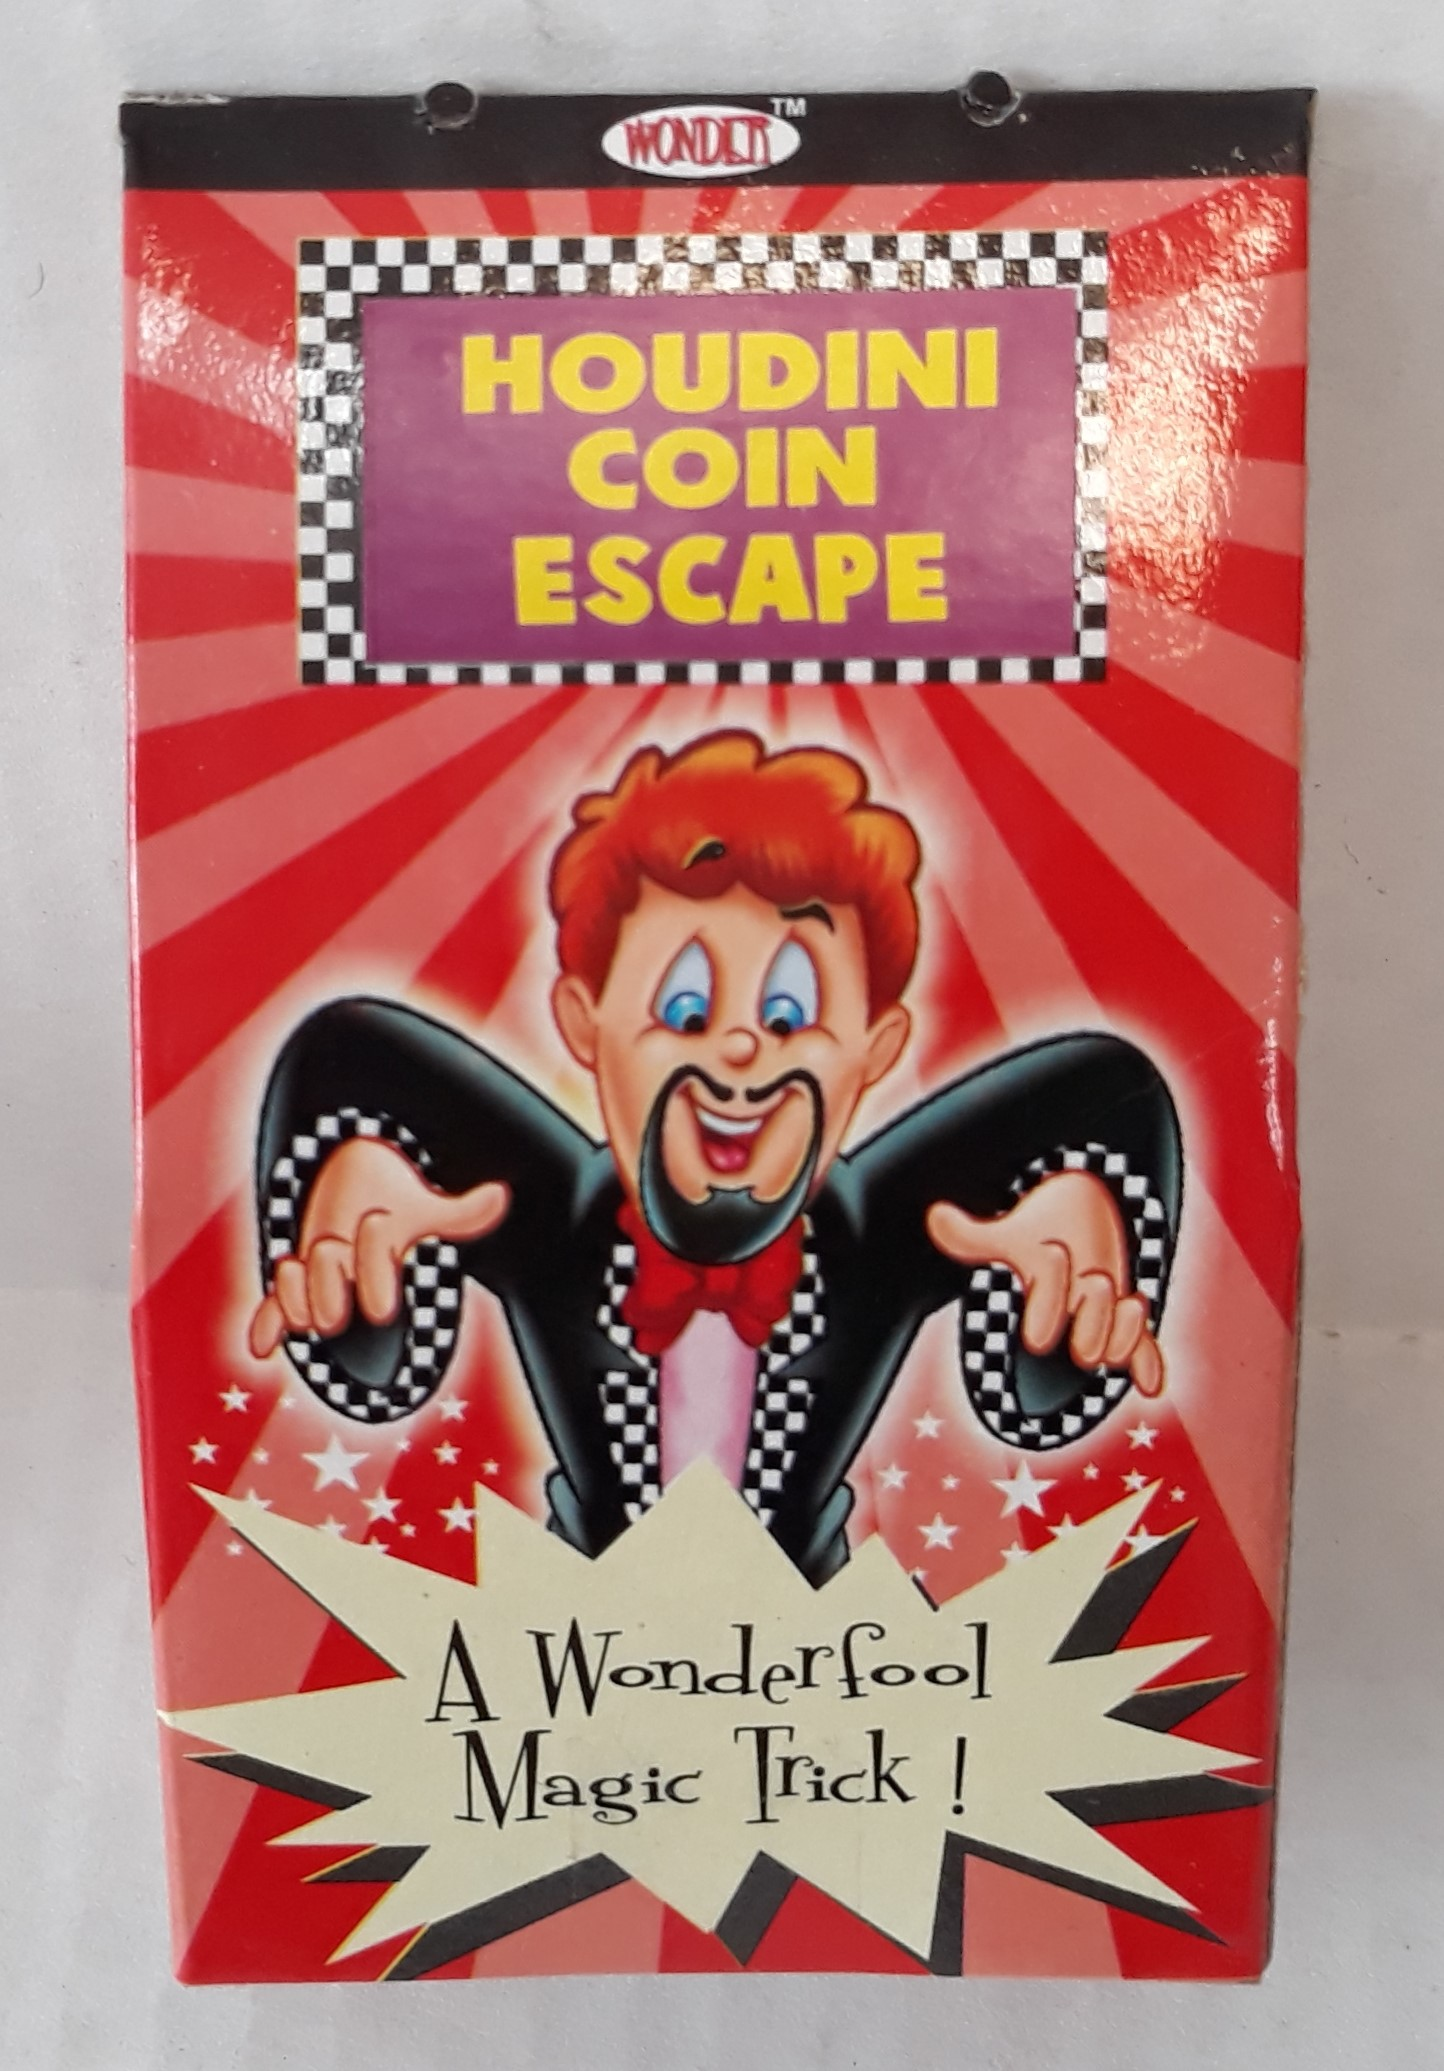 Houdini Coin Escape